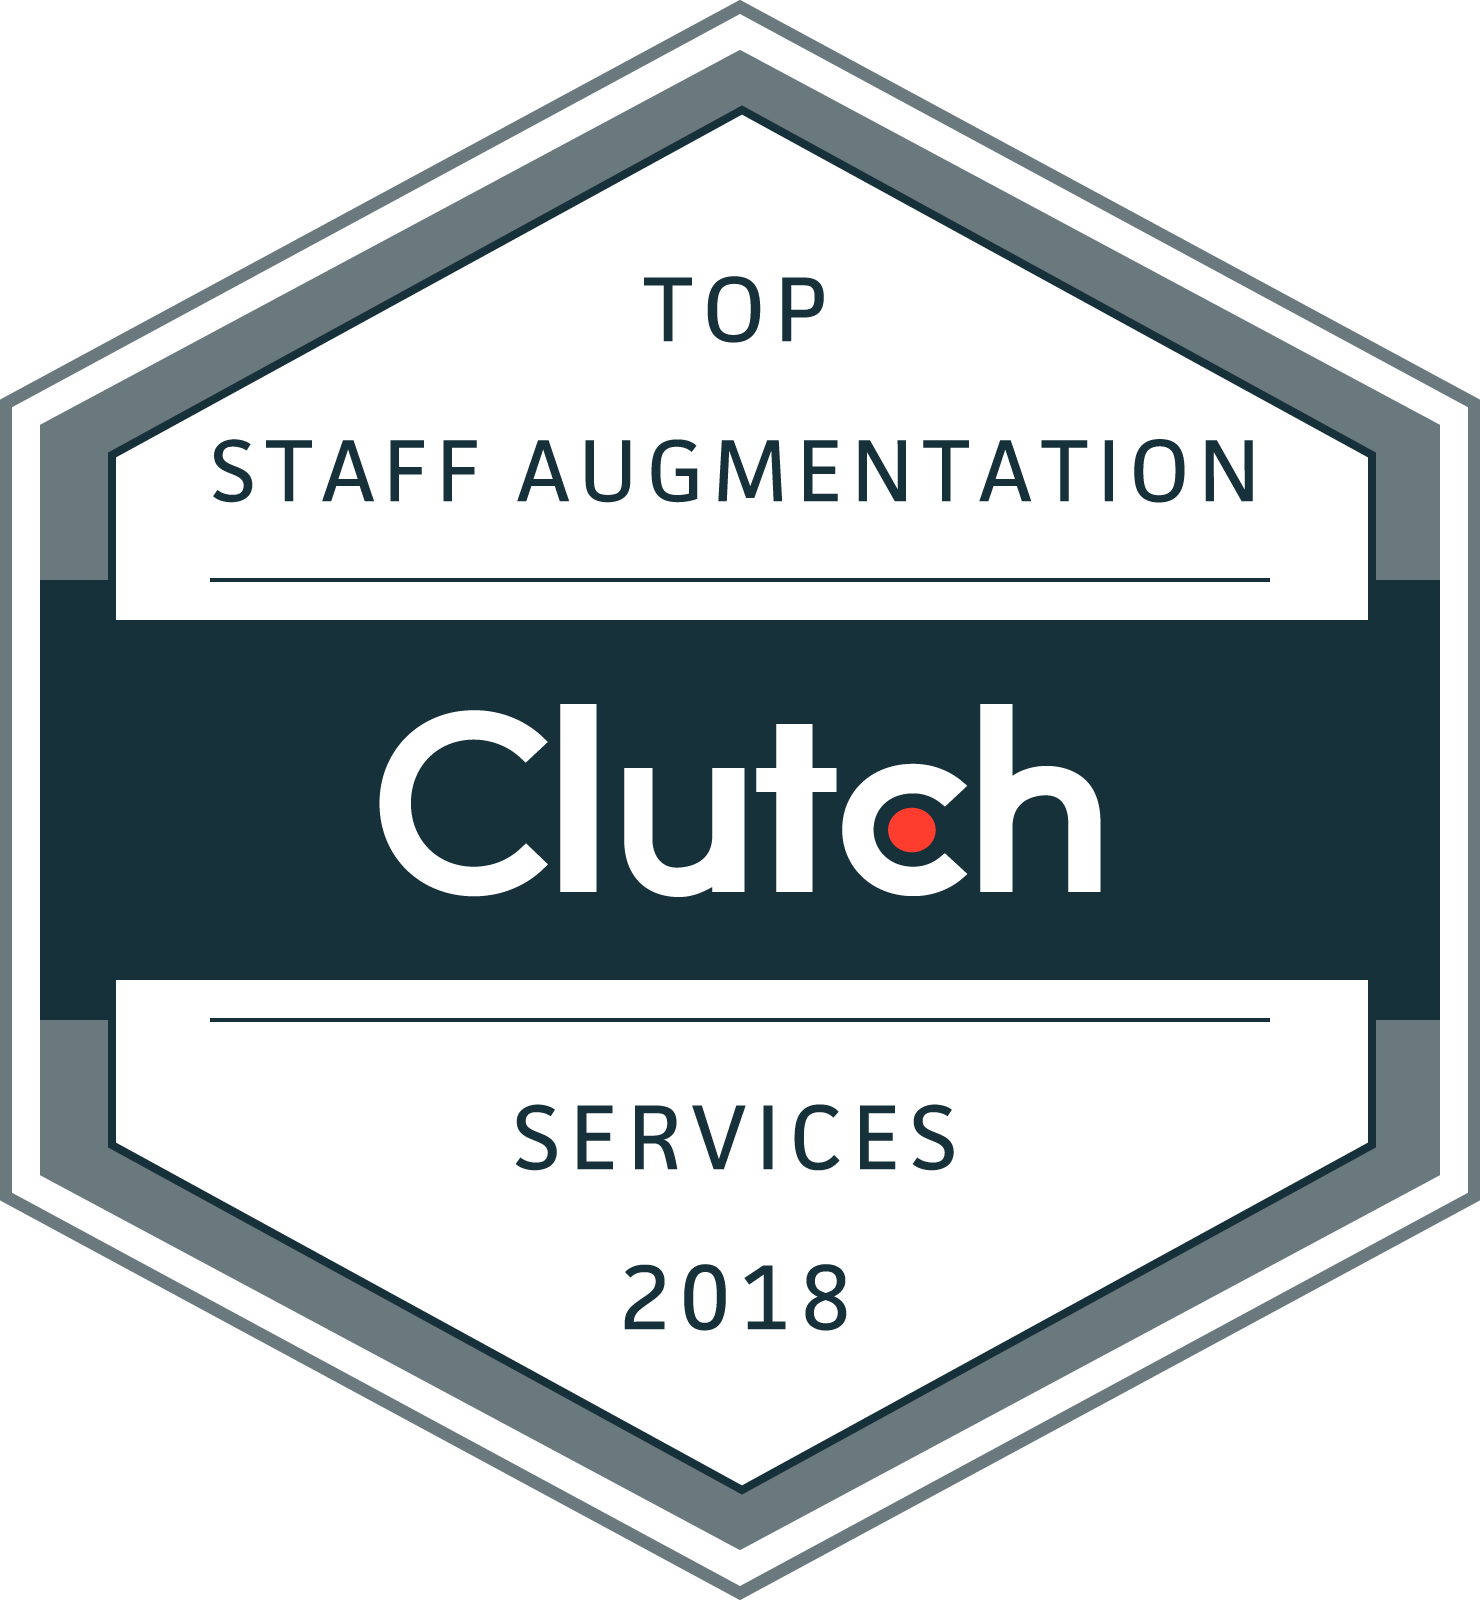 clutch staff augmentation services